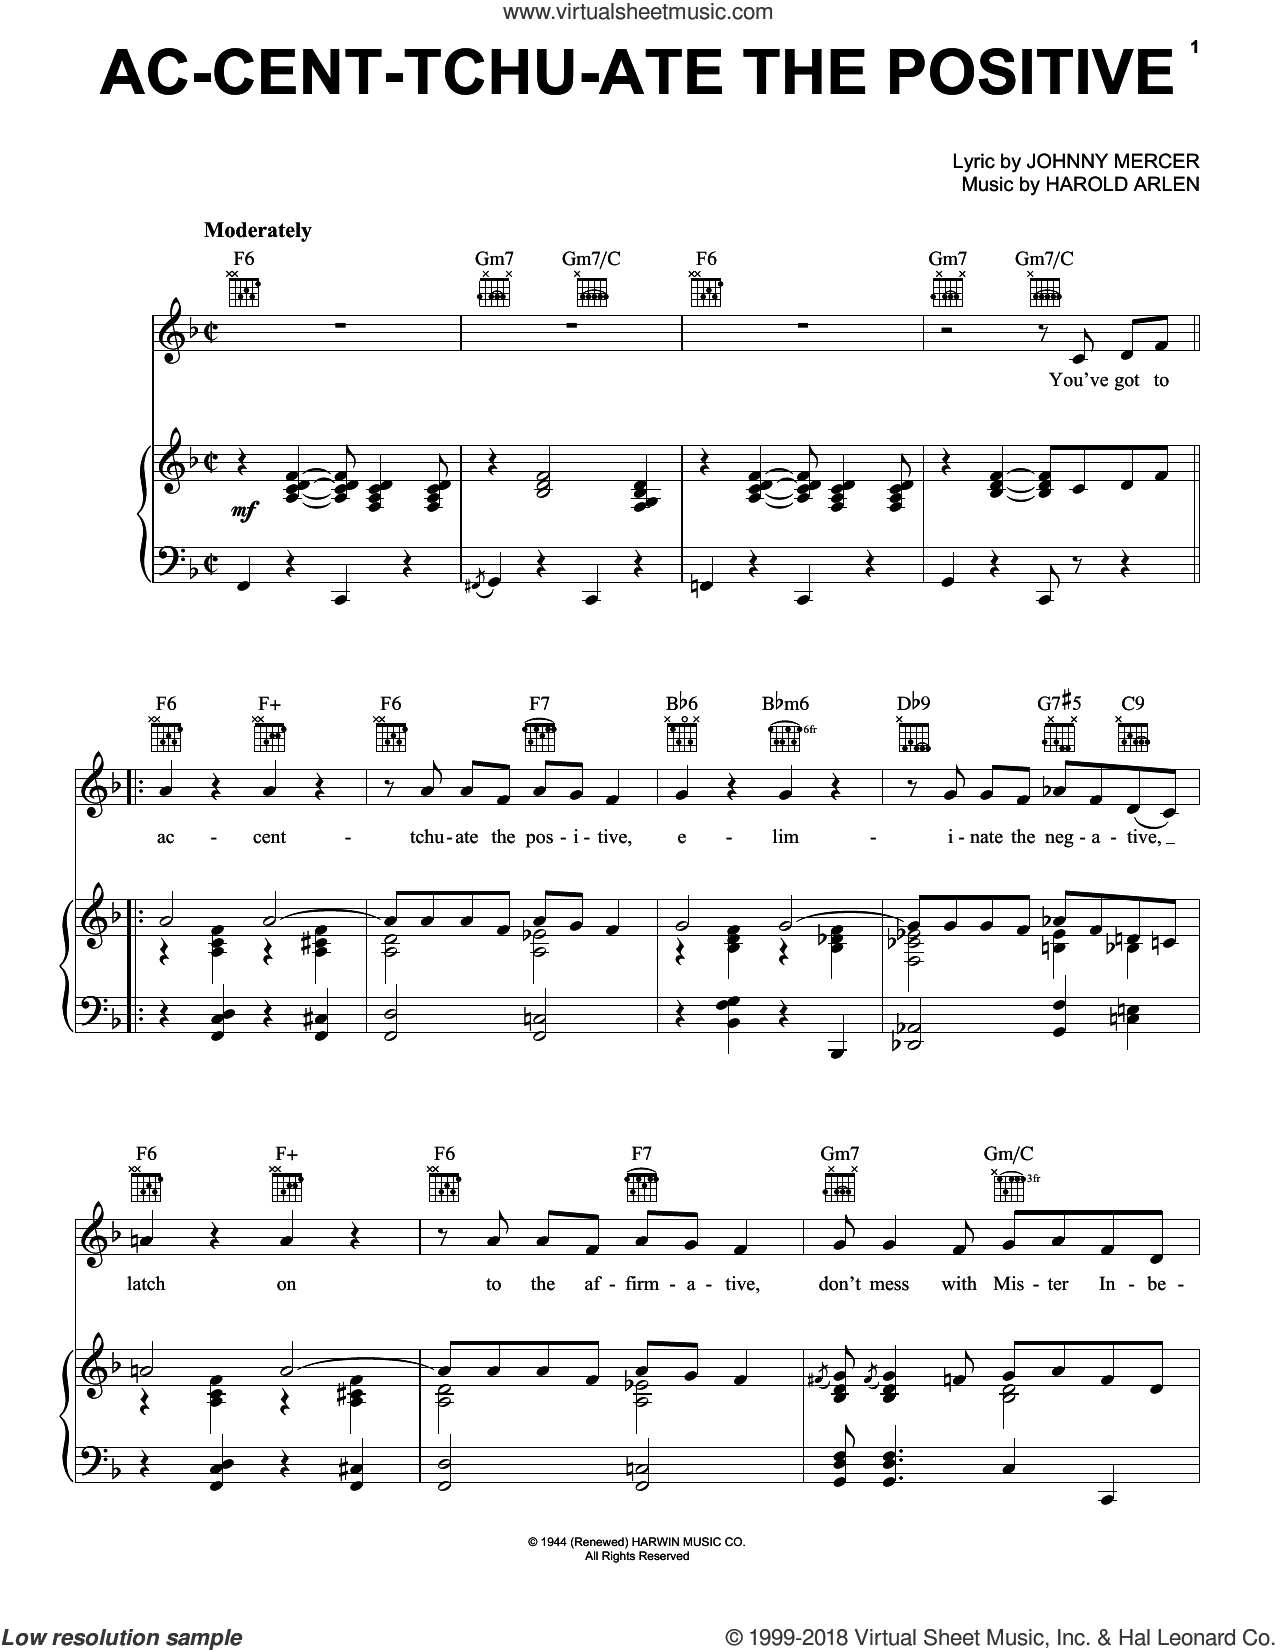 Ac-cent-tchu-ate The Positive sheet music for voice, piano or guitar by Bing Crosby, Harold Arlen and Johnny Mercer, intermediate skill level